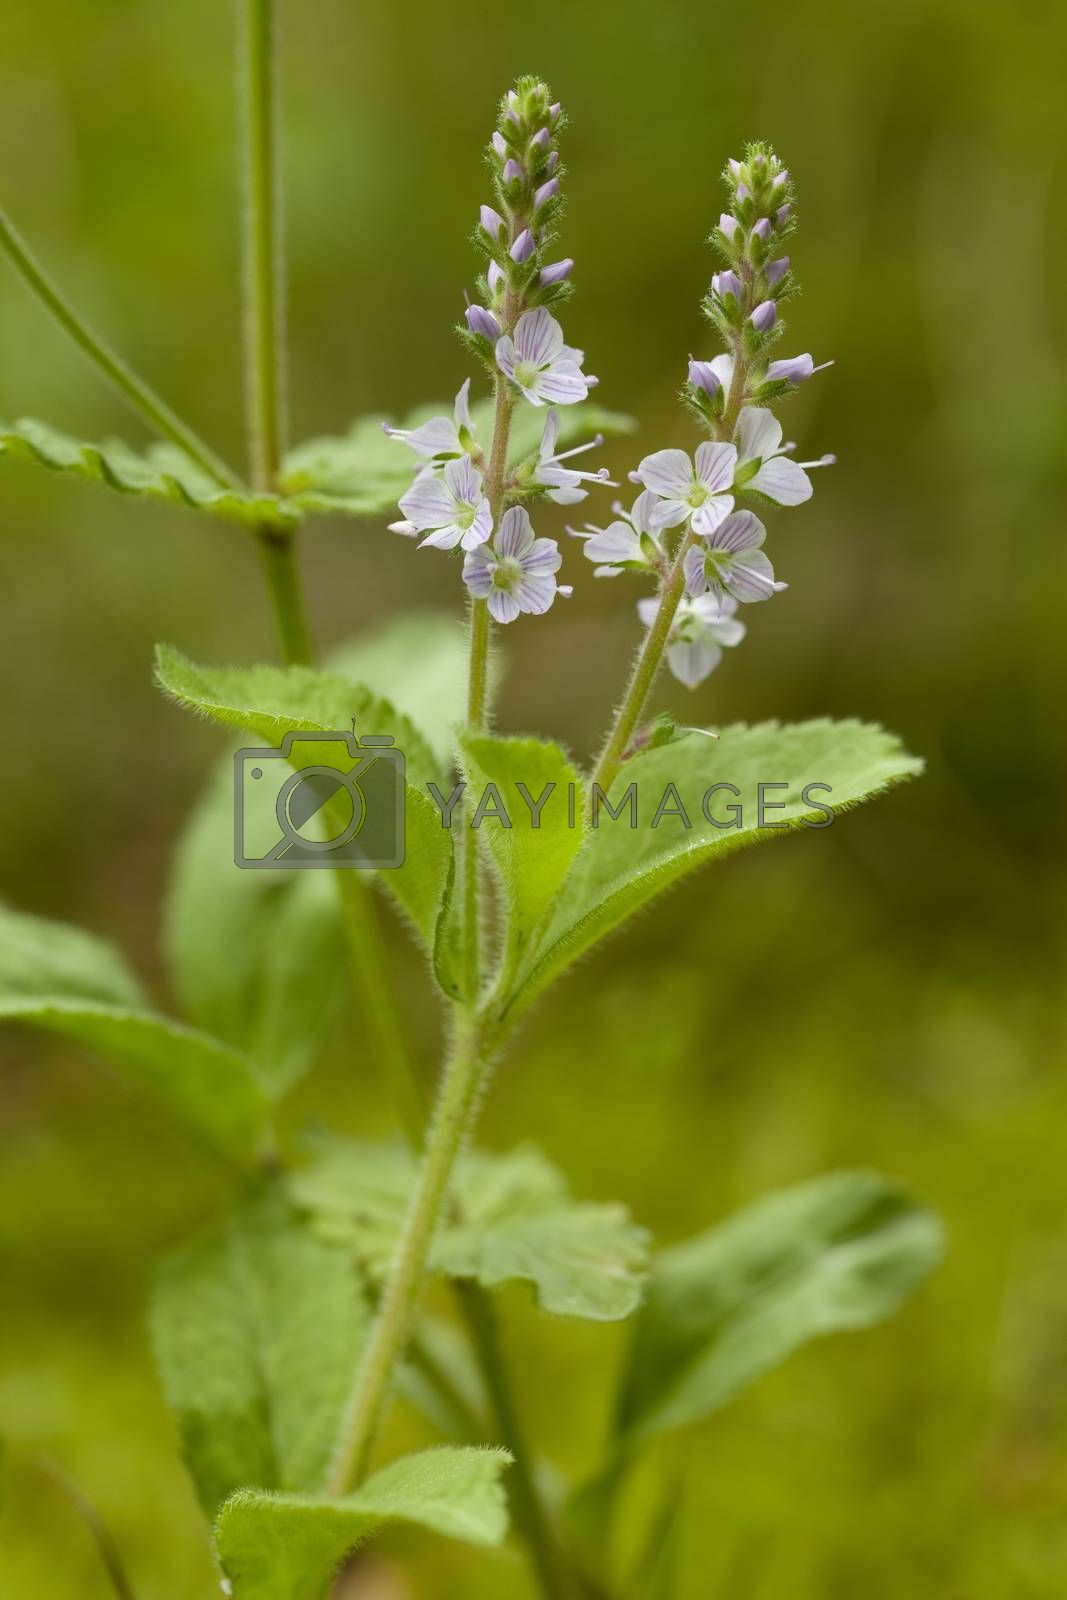 Veronica officinalis by dabjola